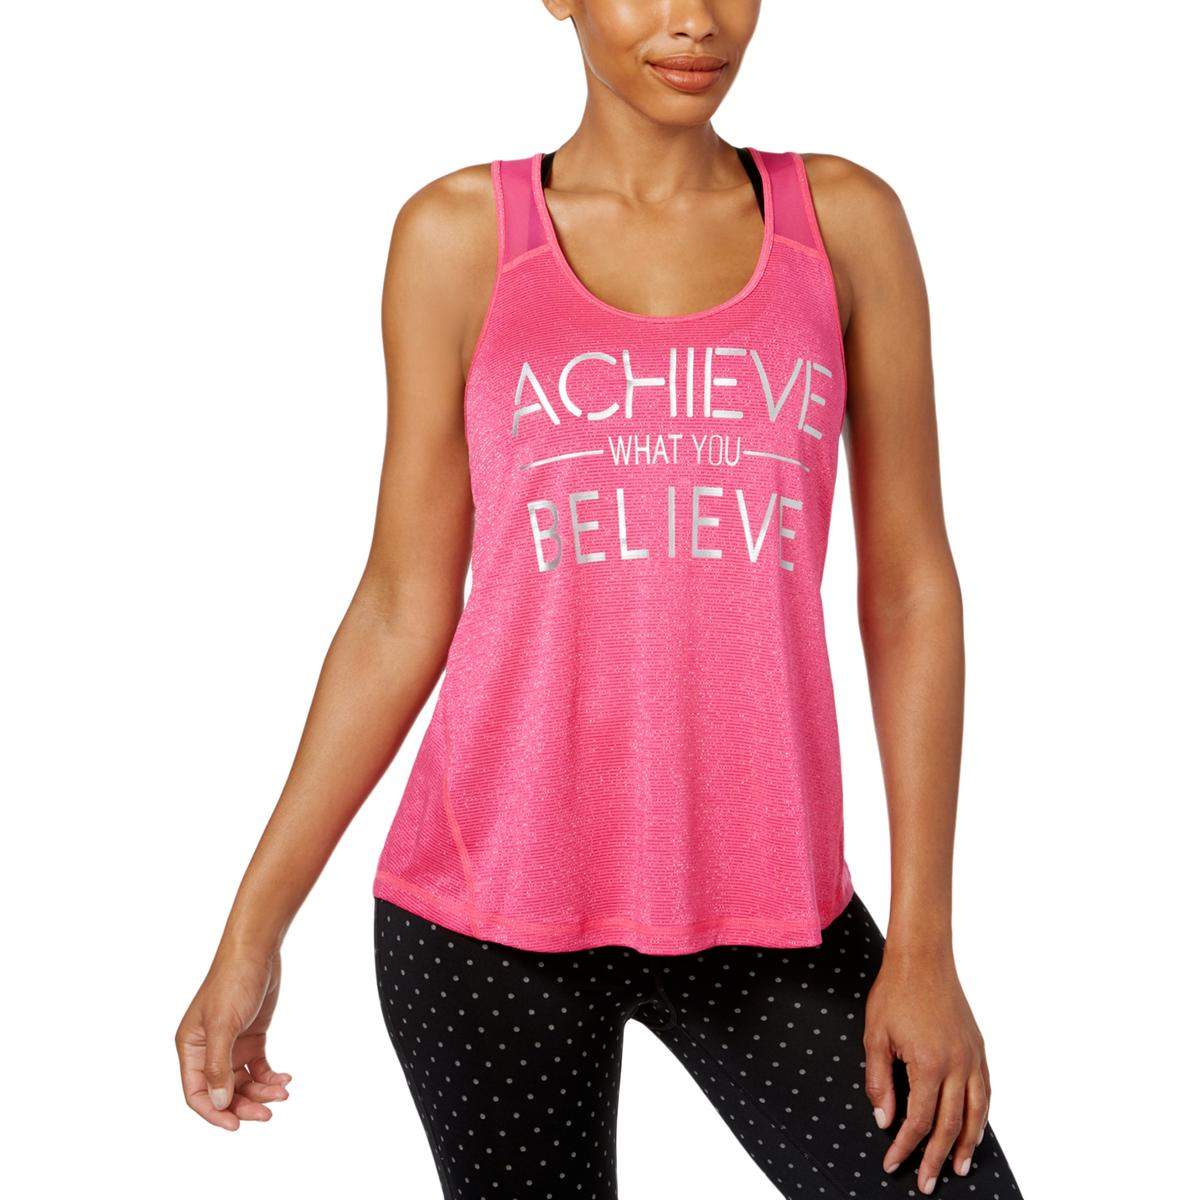 ca51cb488b81bd Details about Ideology Womens Believe Slogan Fitness Yoga Tank Top BHFO 9071